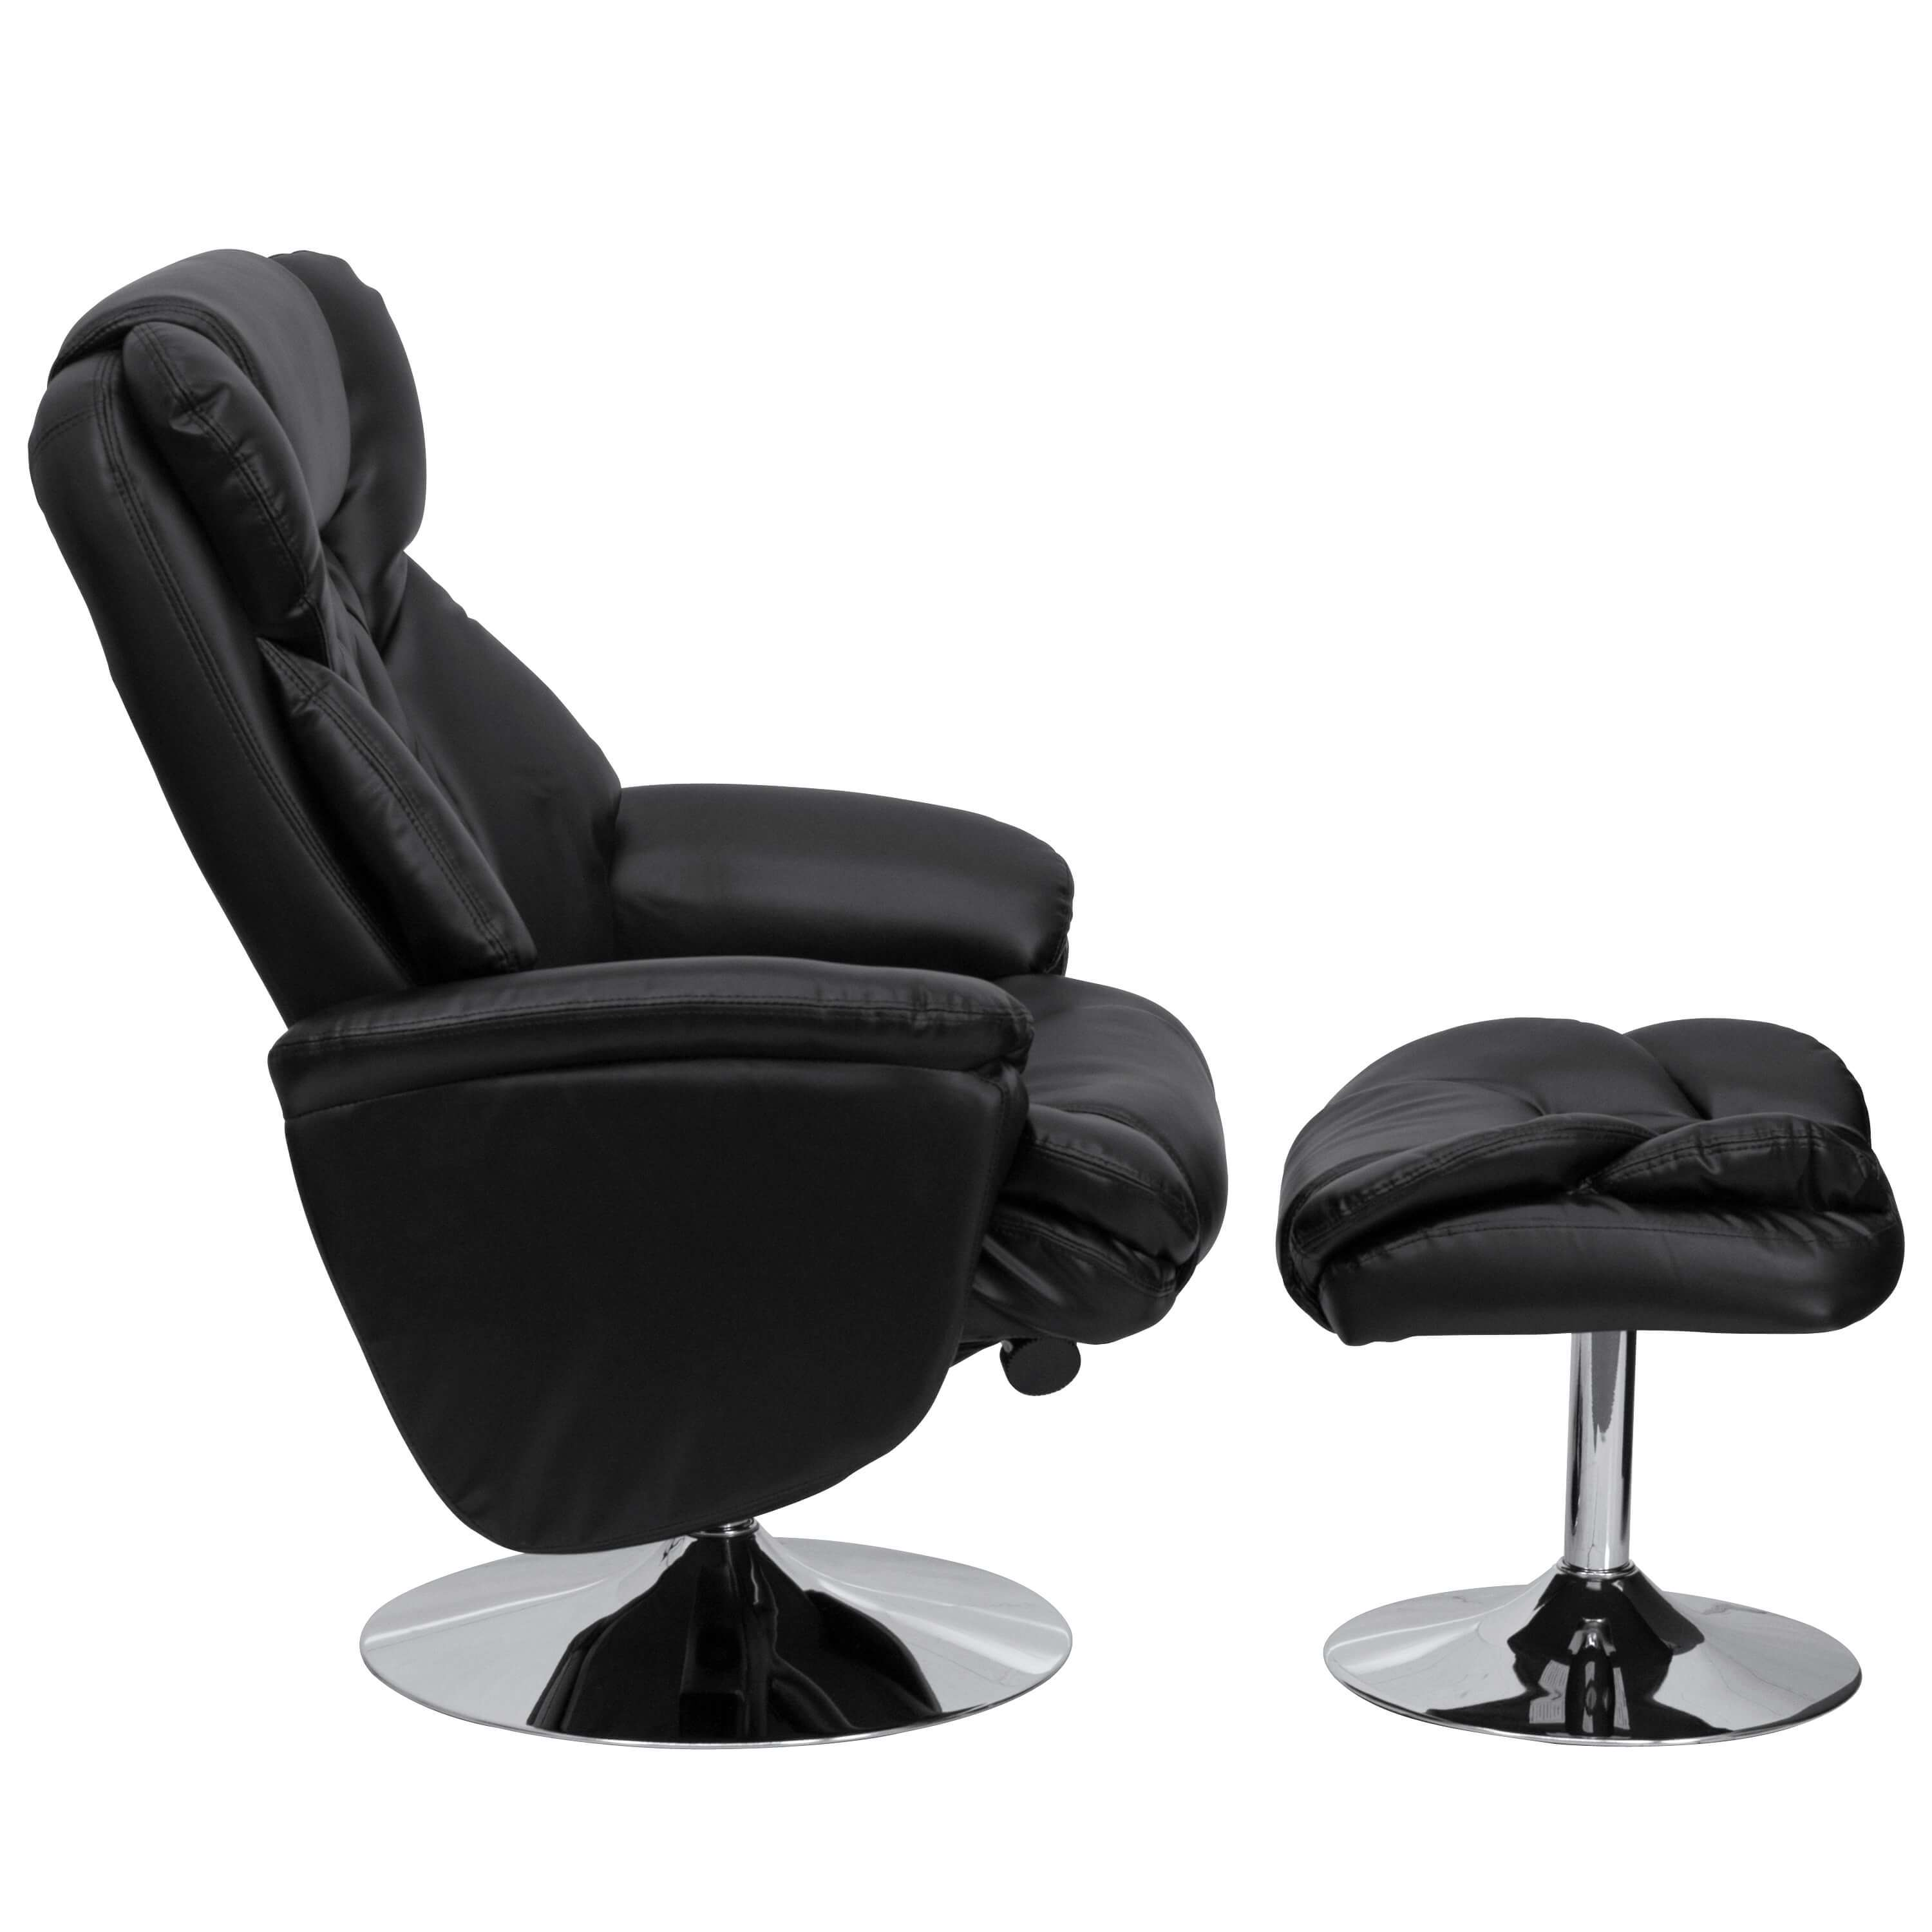 Puglia Black Leather Recliner Chair